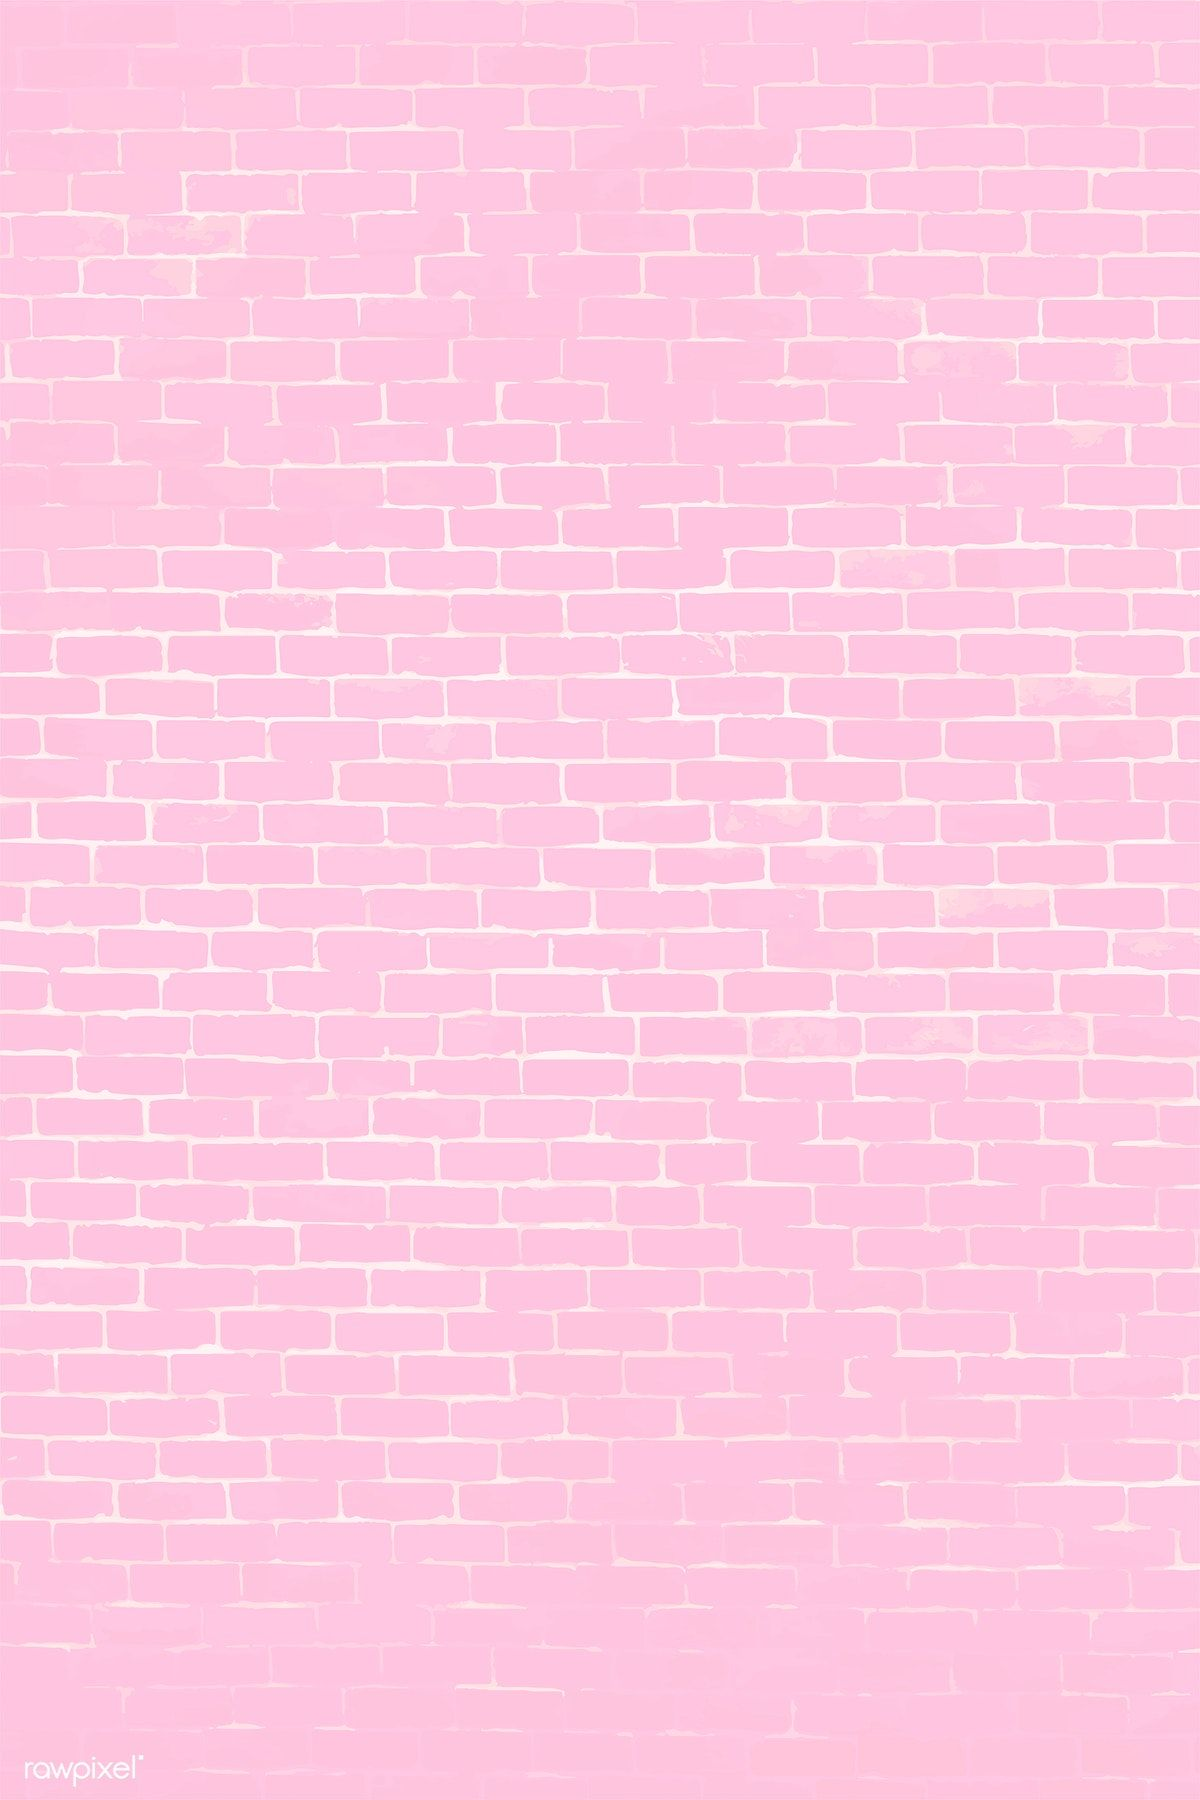 Pastel Pink Brick Wall Textured Background Vector Free Image By Rawpixel Com In 2020 Brick Background Textured Background Brick Wall